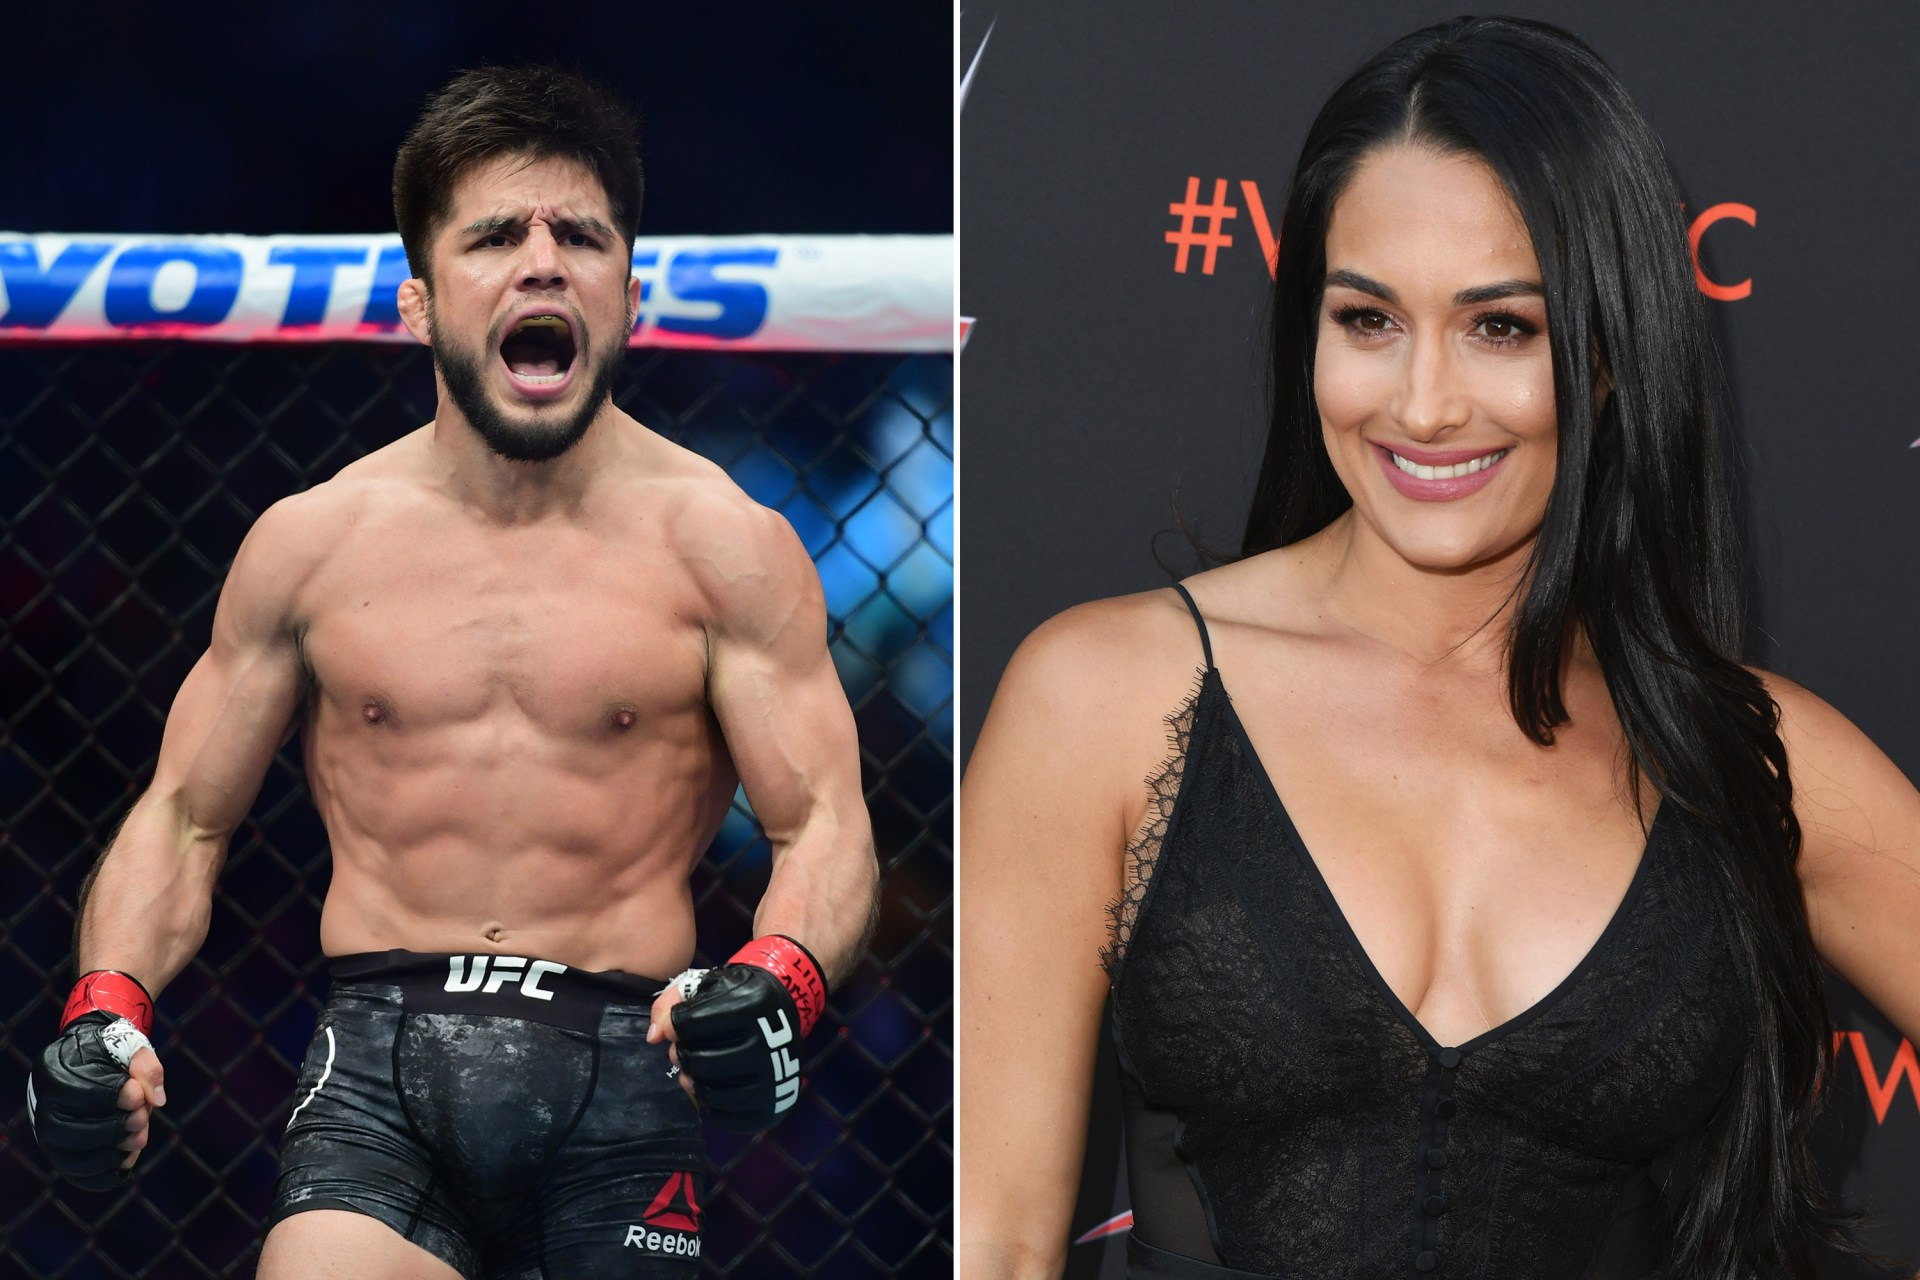 UFC champion Henry Cejudo uses the corniest pick up line to ask Nikki Bella out on a date for Valentine's Day - Henry Cejudo